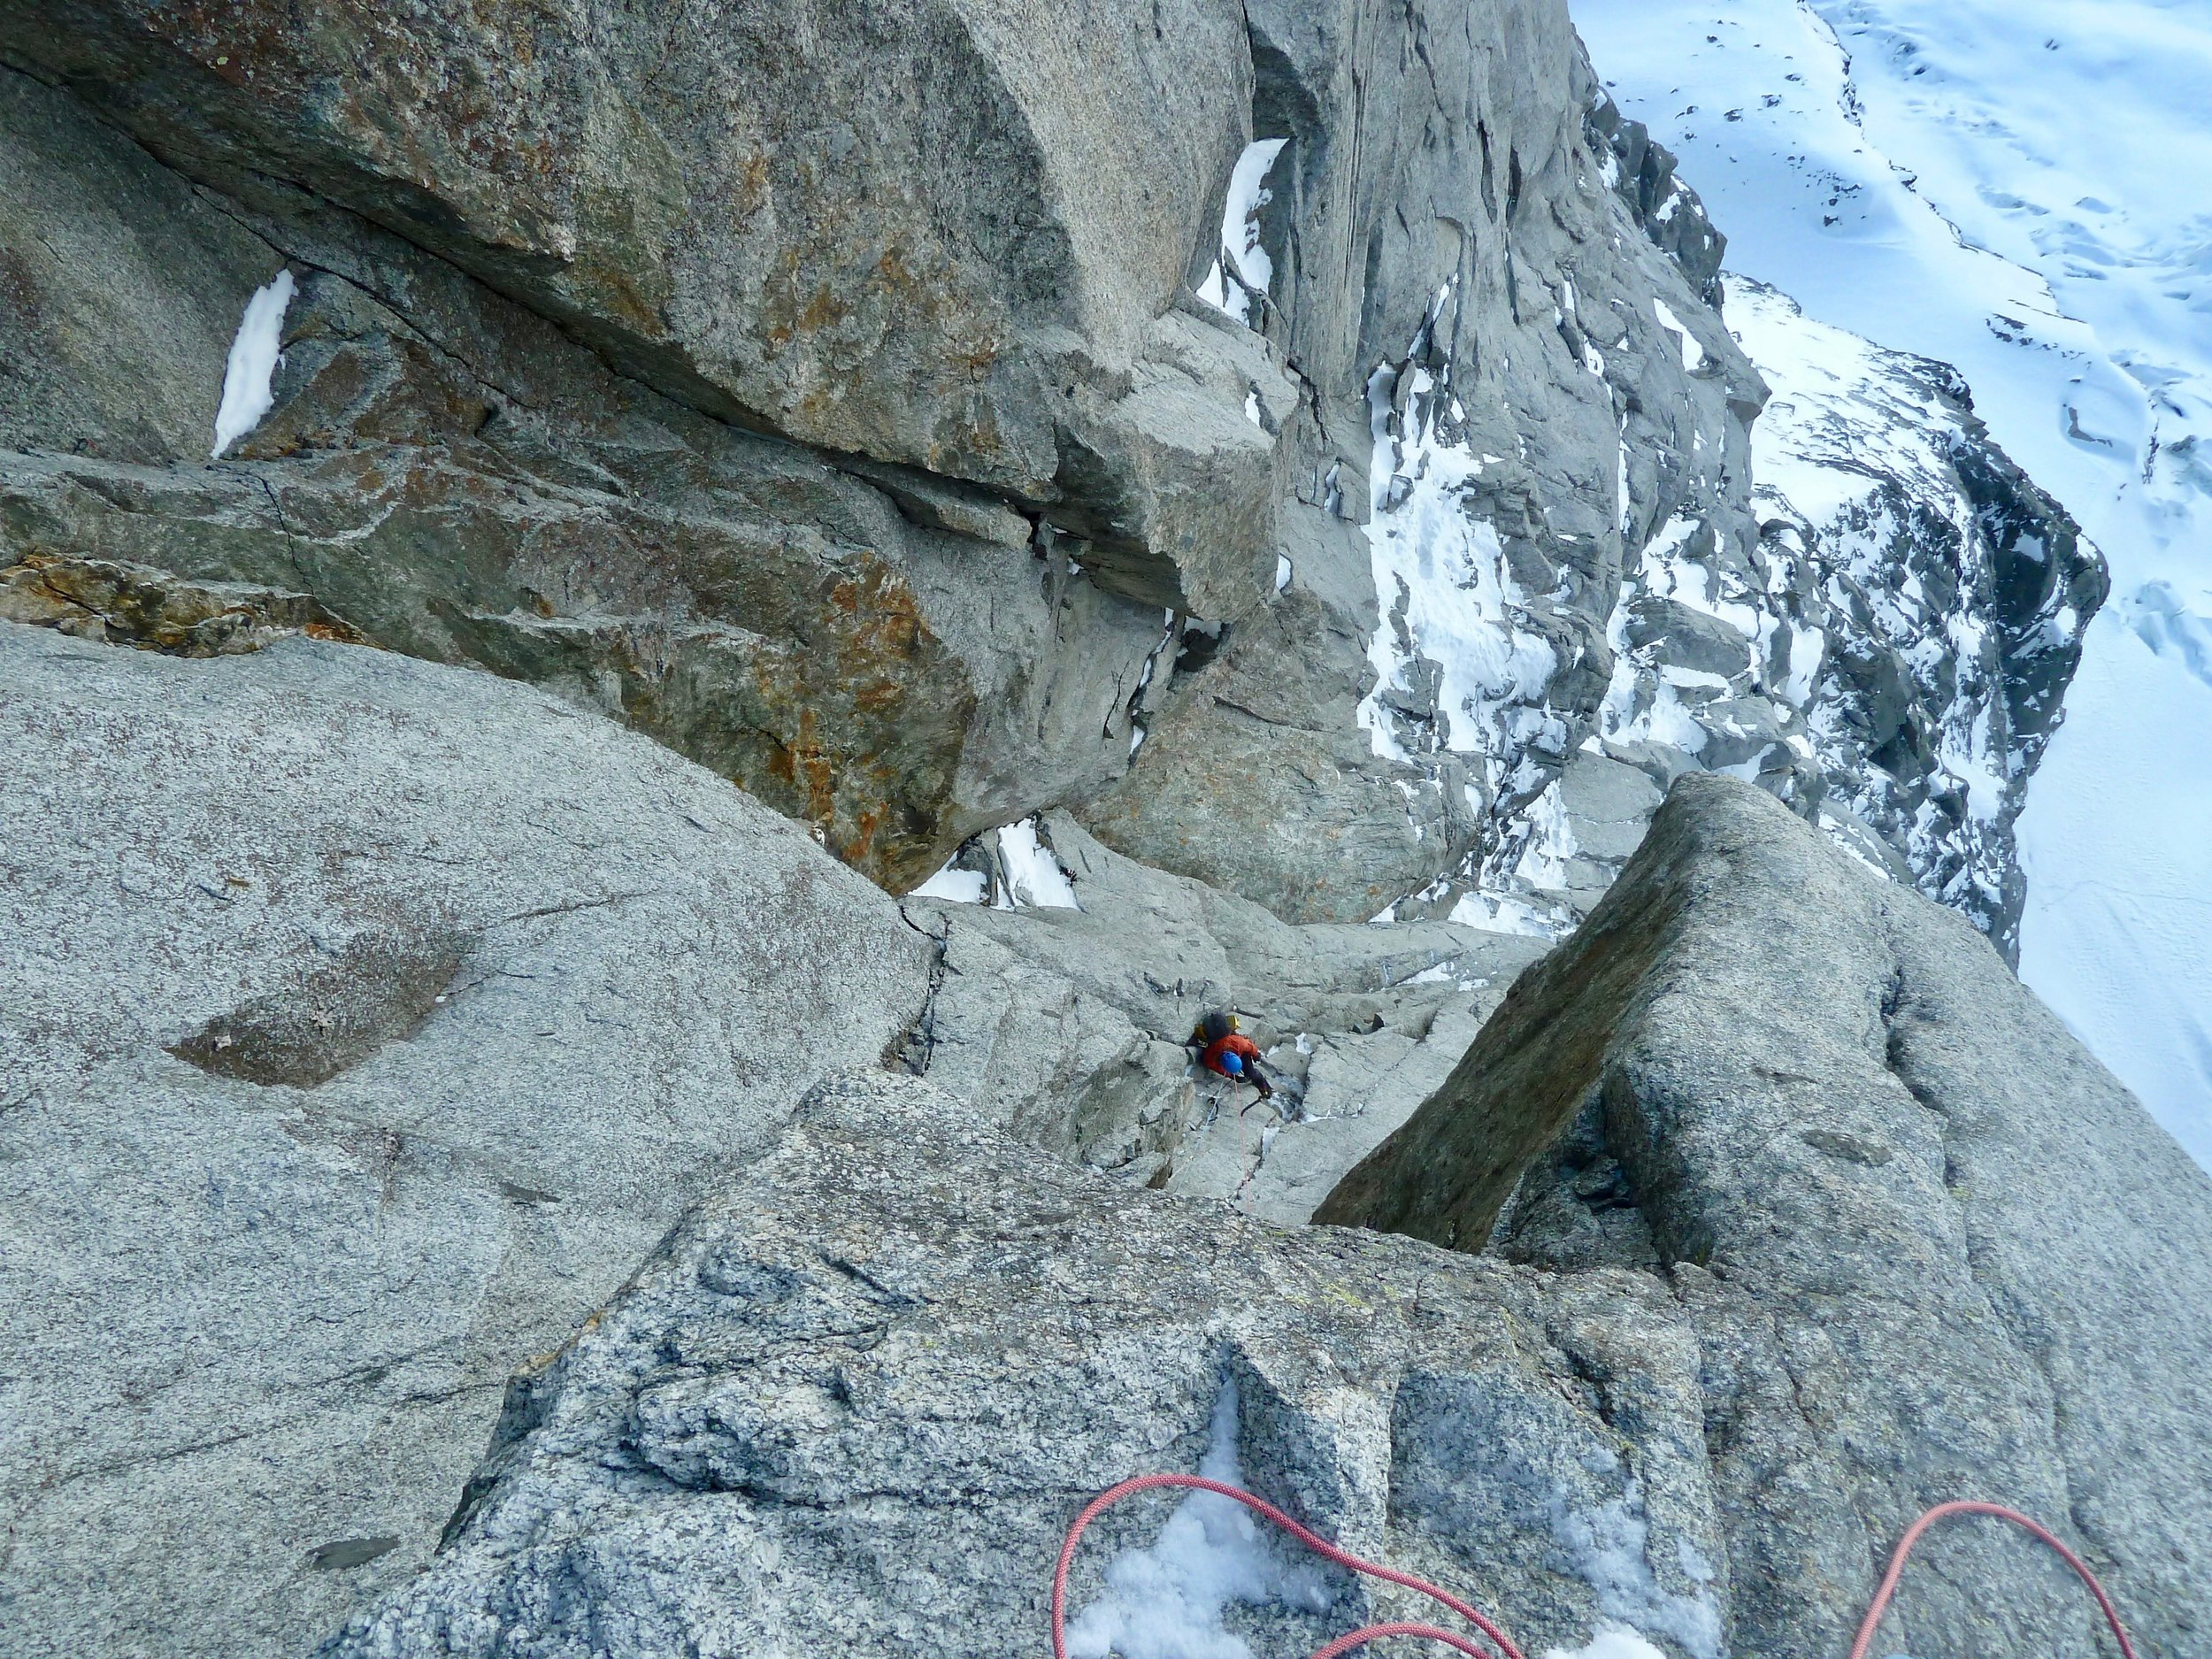 looking down the first crux chimney at Kim